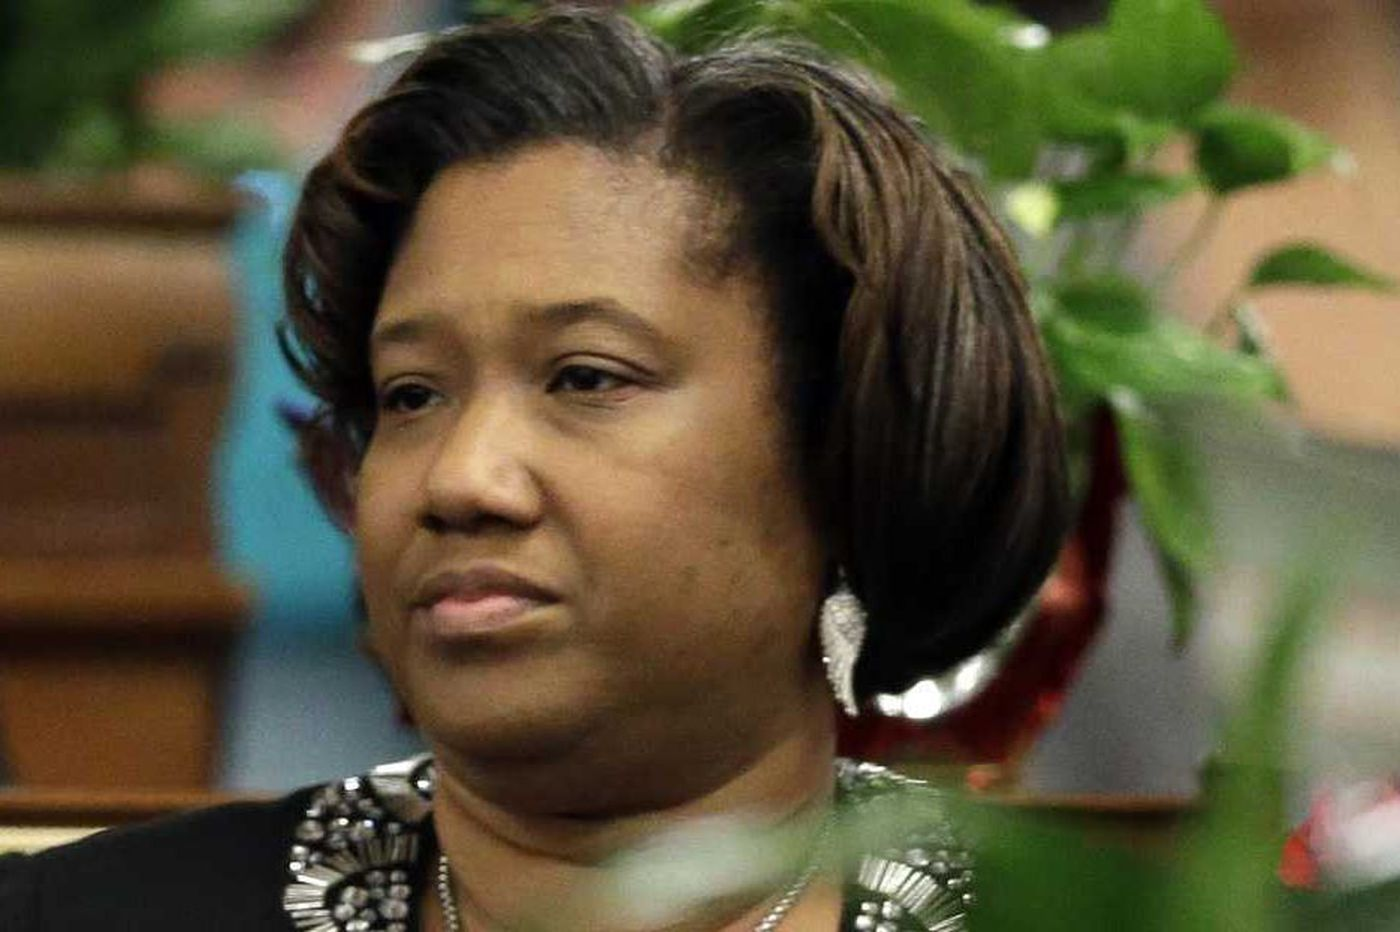 State Rep. Vanessa Brown guilty on all counts; took $4,000 bribe in sting